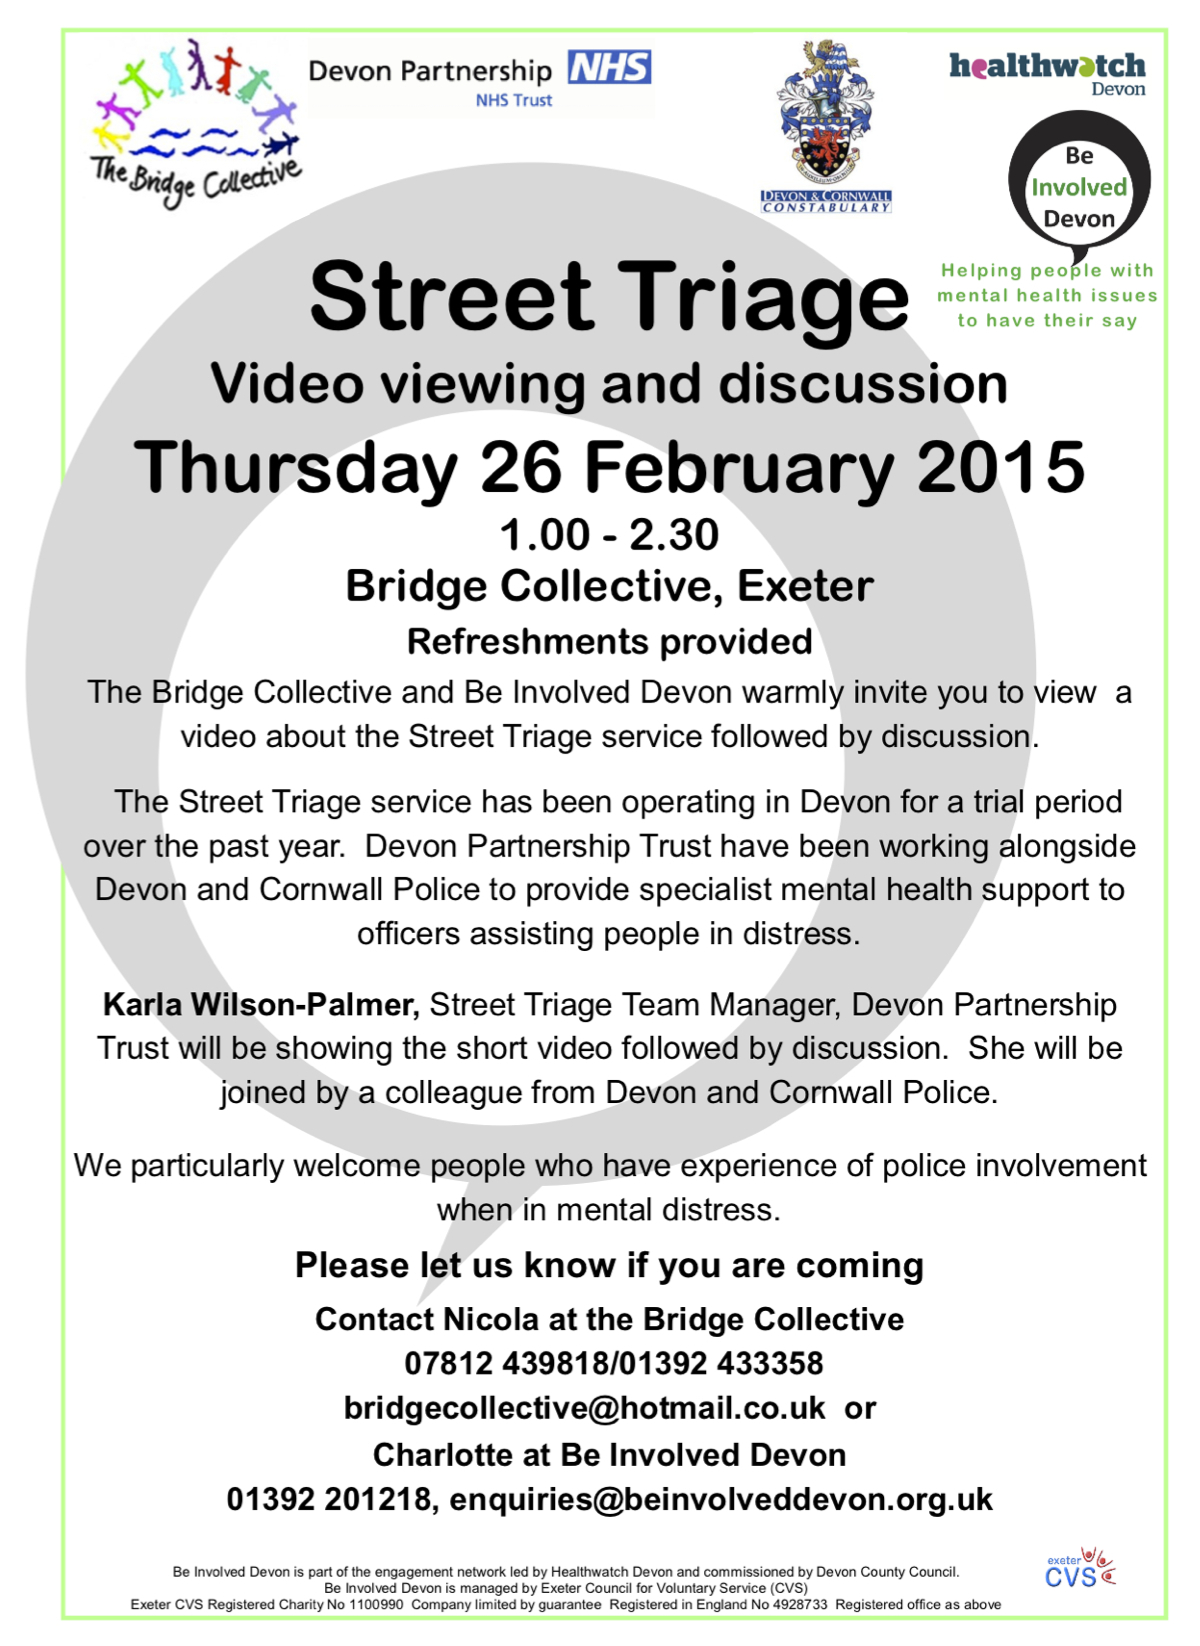 26.2.15 Street Triage meeting, Bridge Collective